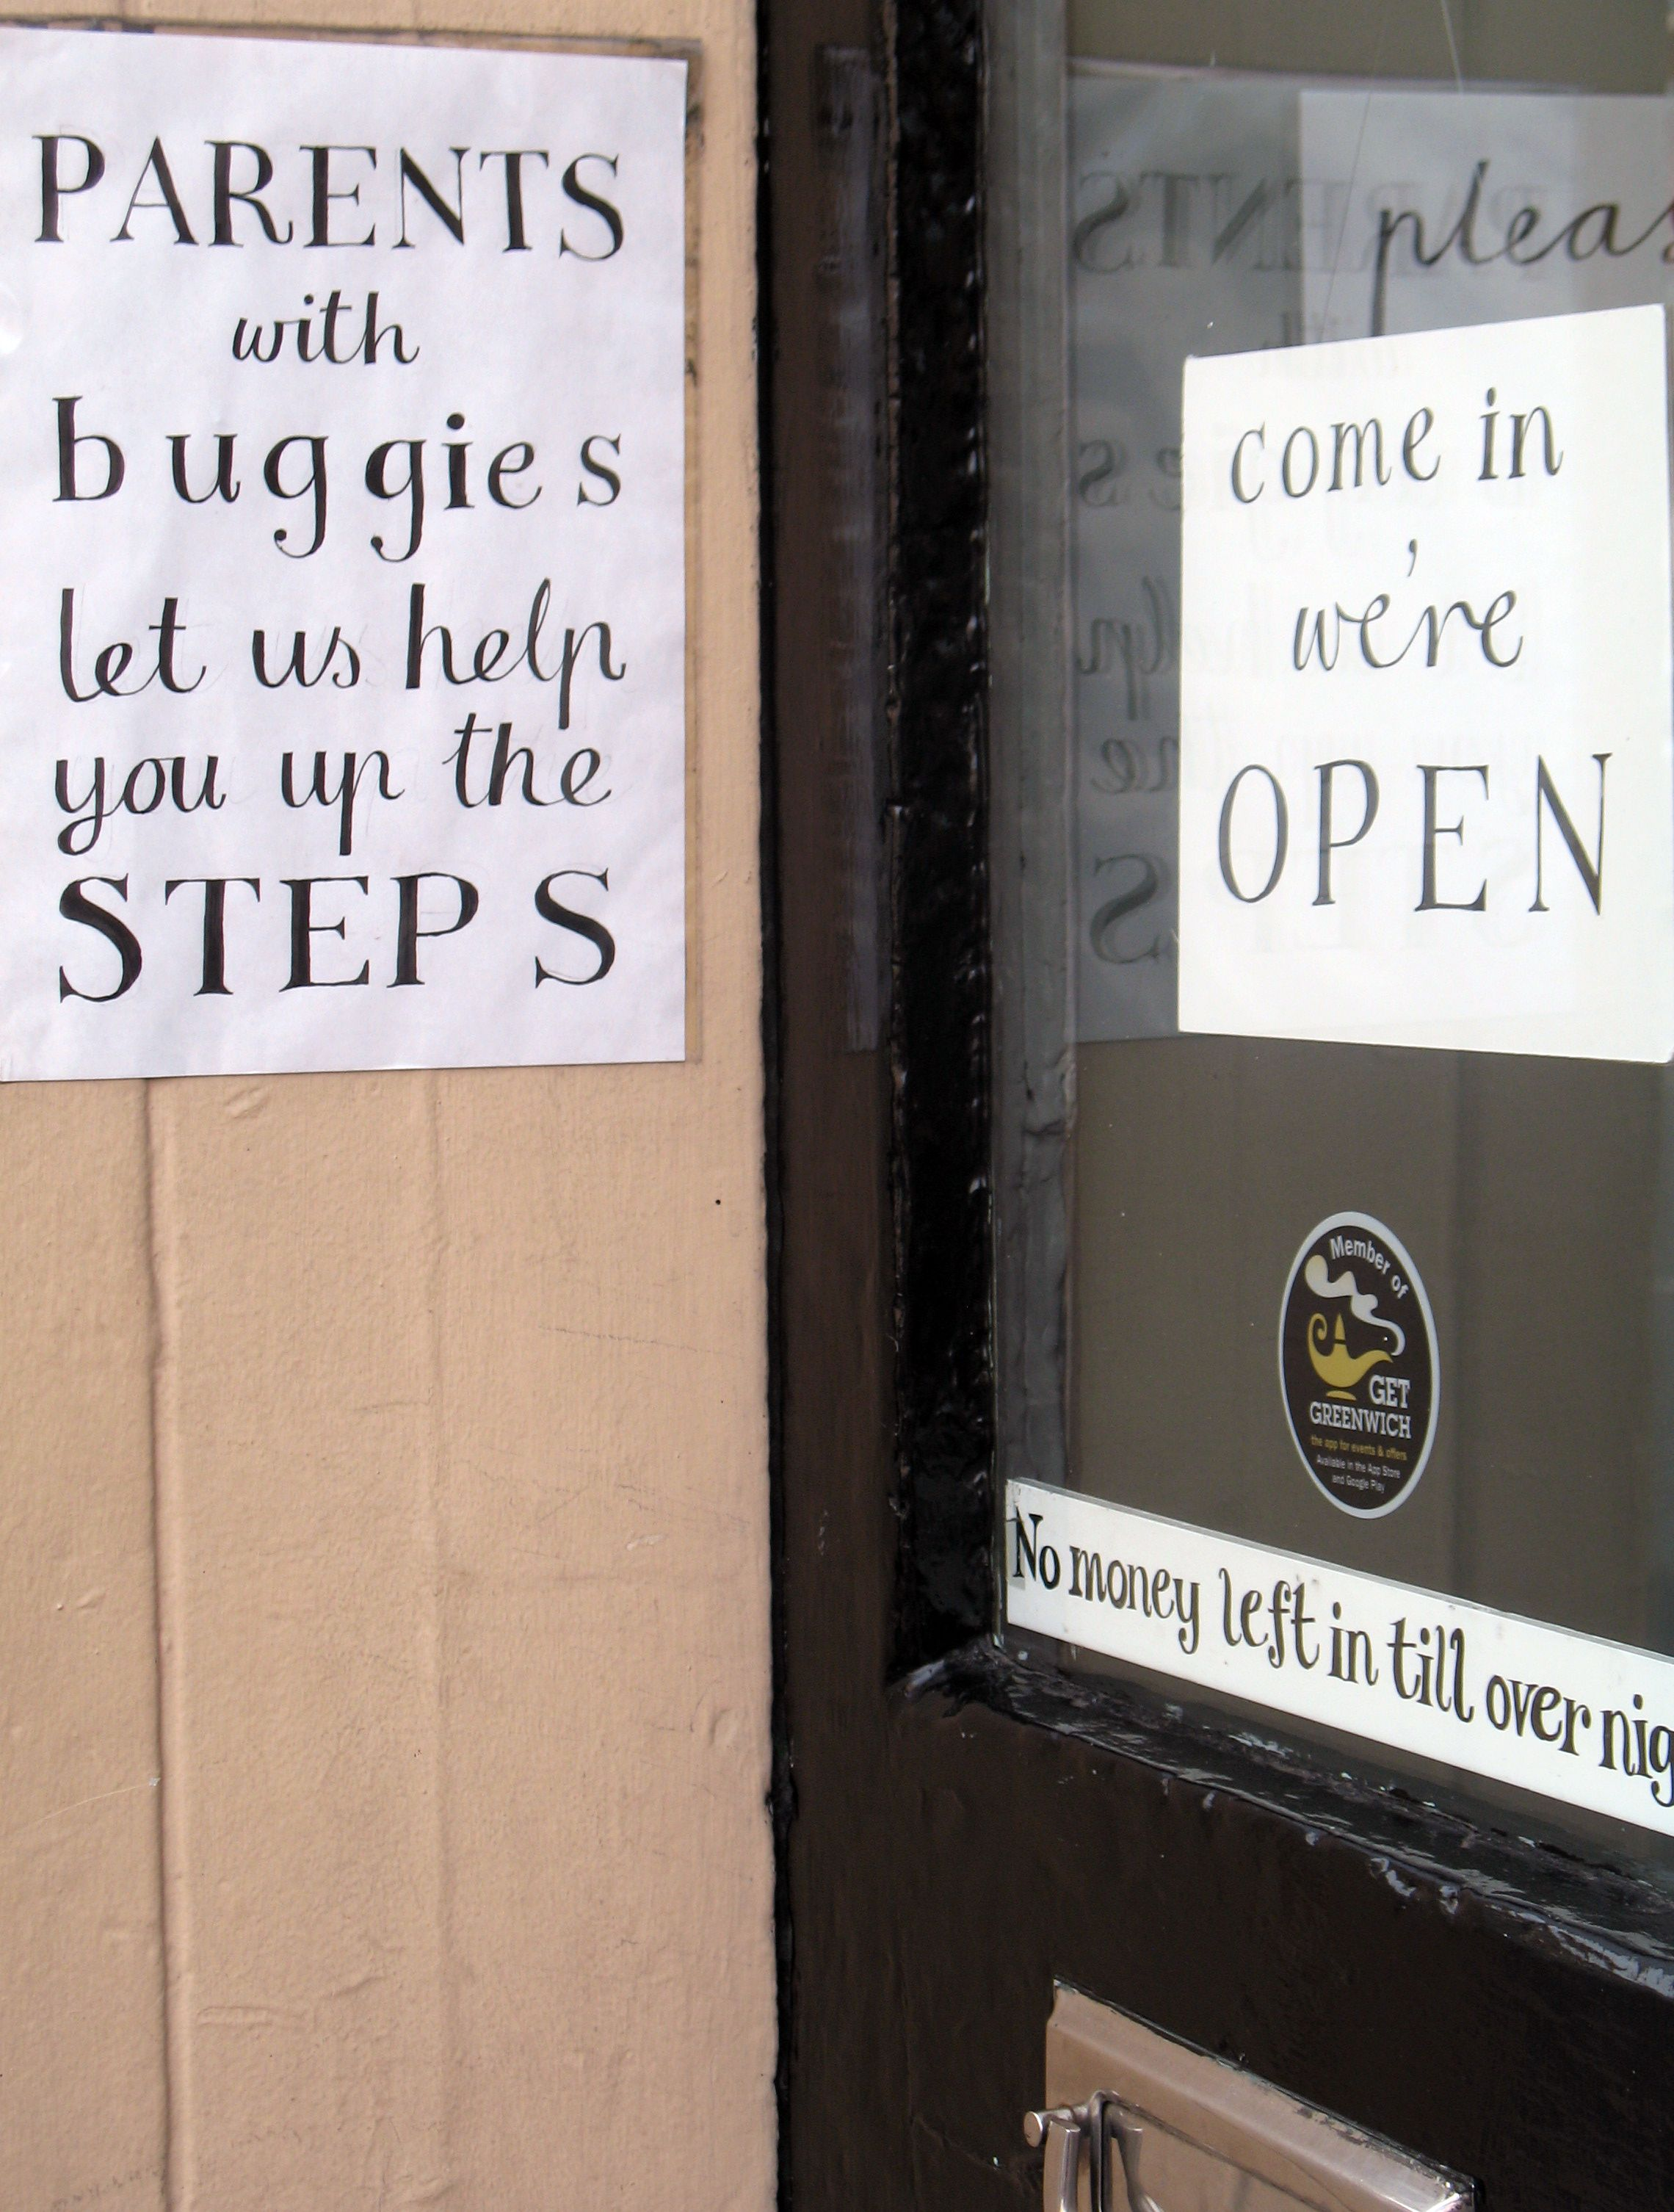 Zielsveel Design ~ London Type ~ Collection // Come in, we're open. Parents with buggies let us help you. @ lushdesign, Greenwich